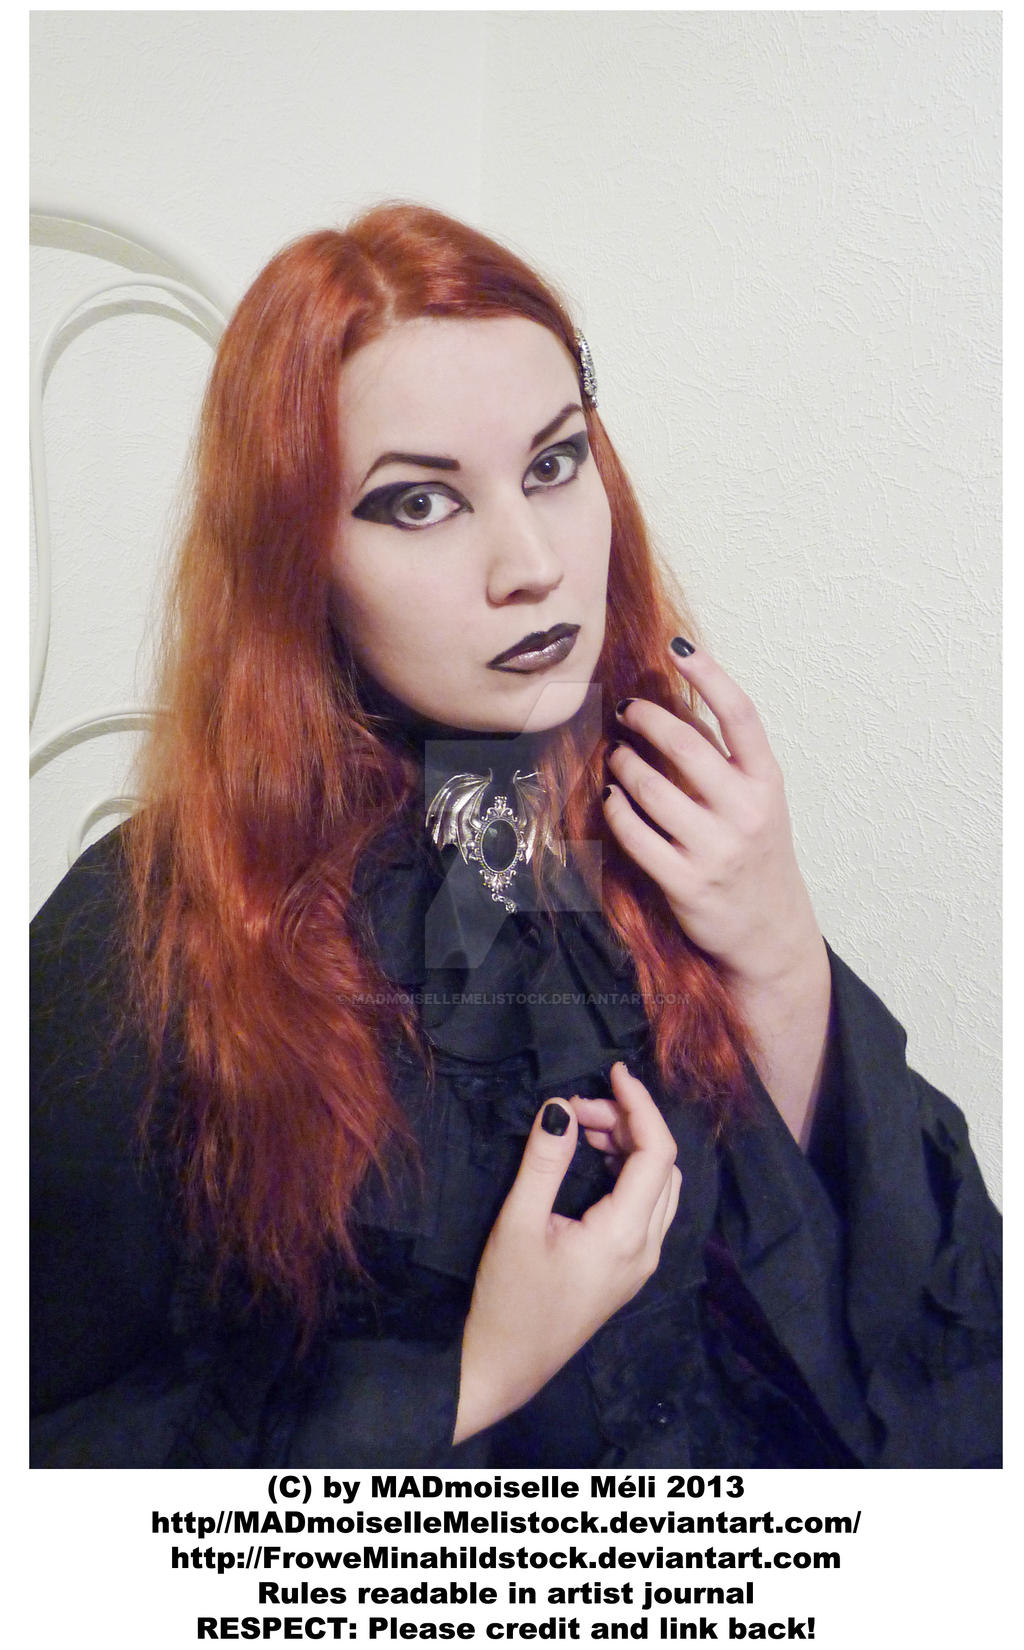 Gothic Girl Stock 001 by MADmoiselleMeliStock